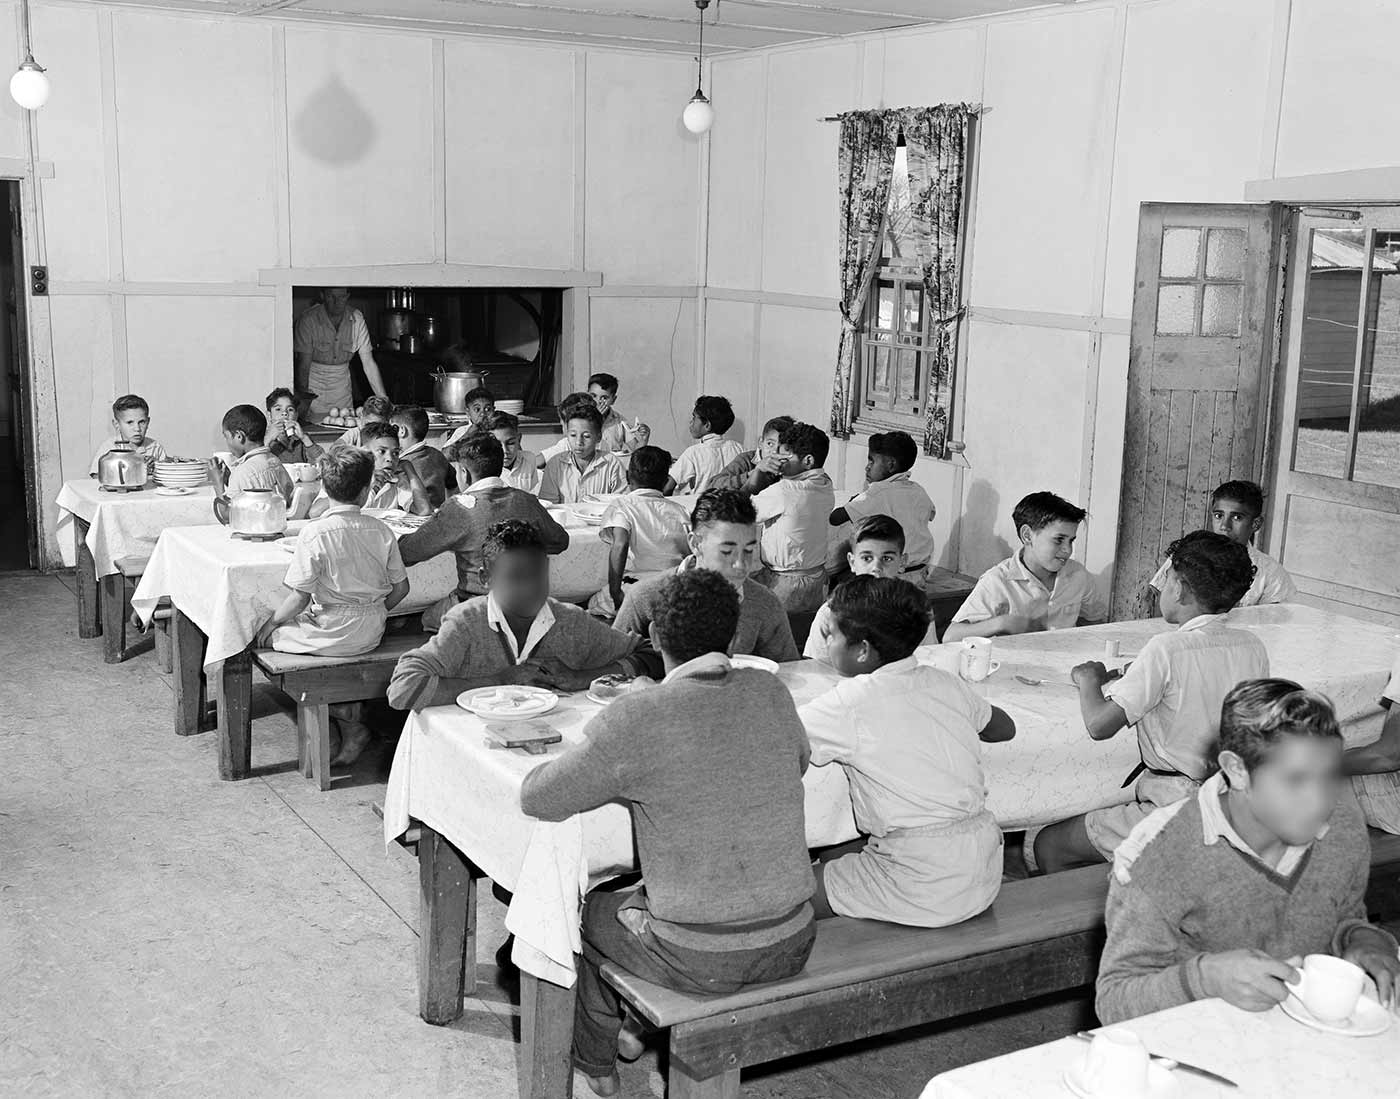 Black and white photo showing groups of young boys seated on long wooden benches at long tables, covered with white tablecloths. An adult stands at a servery window at the far end of the room. - click to view larger image